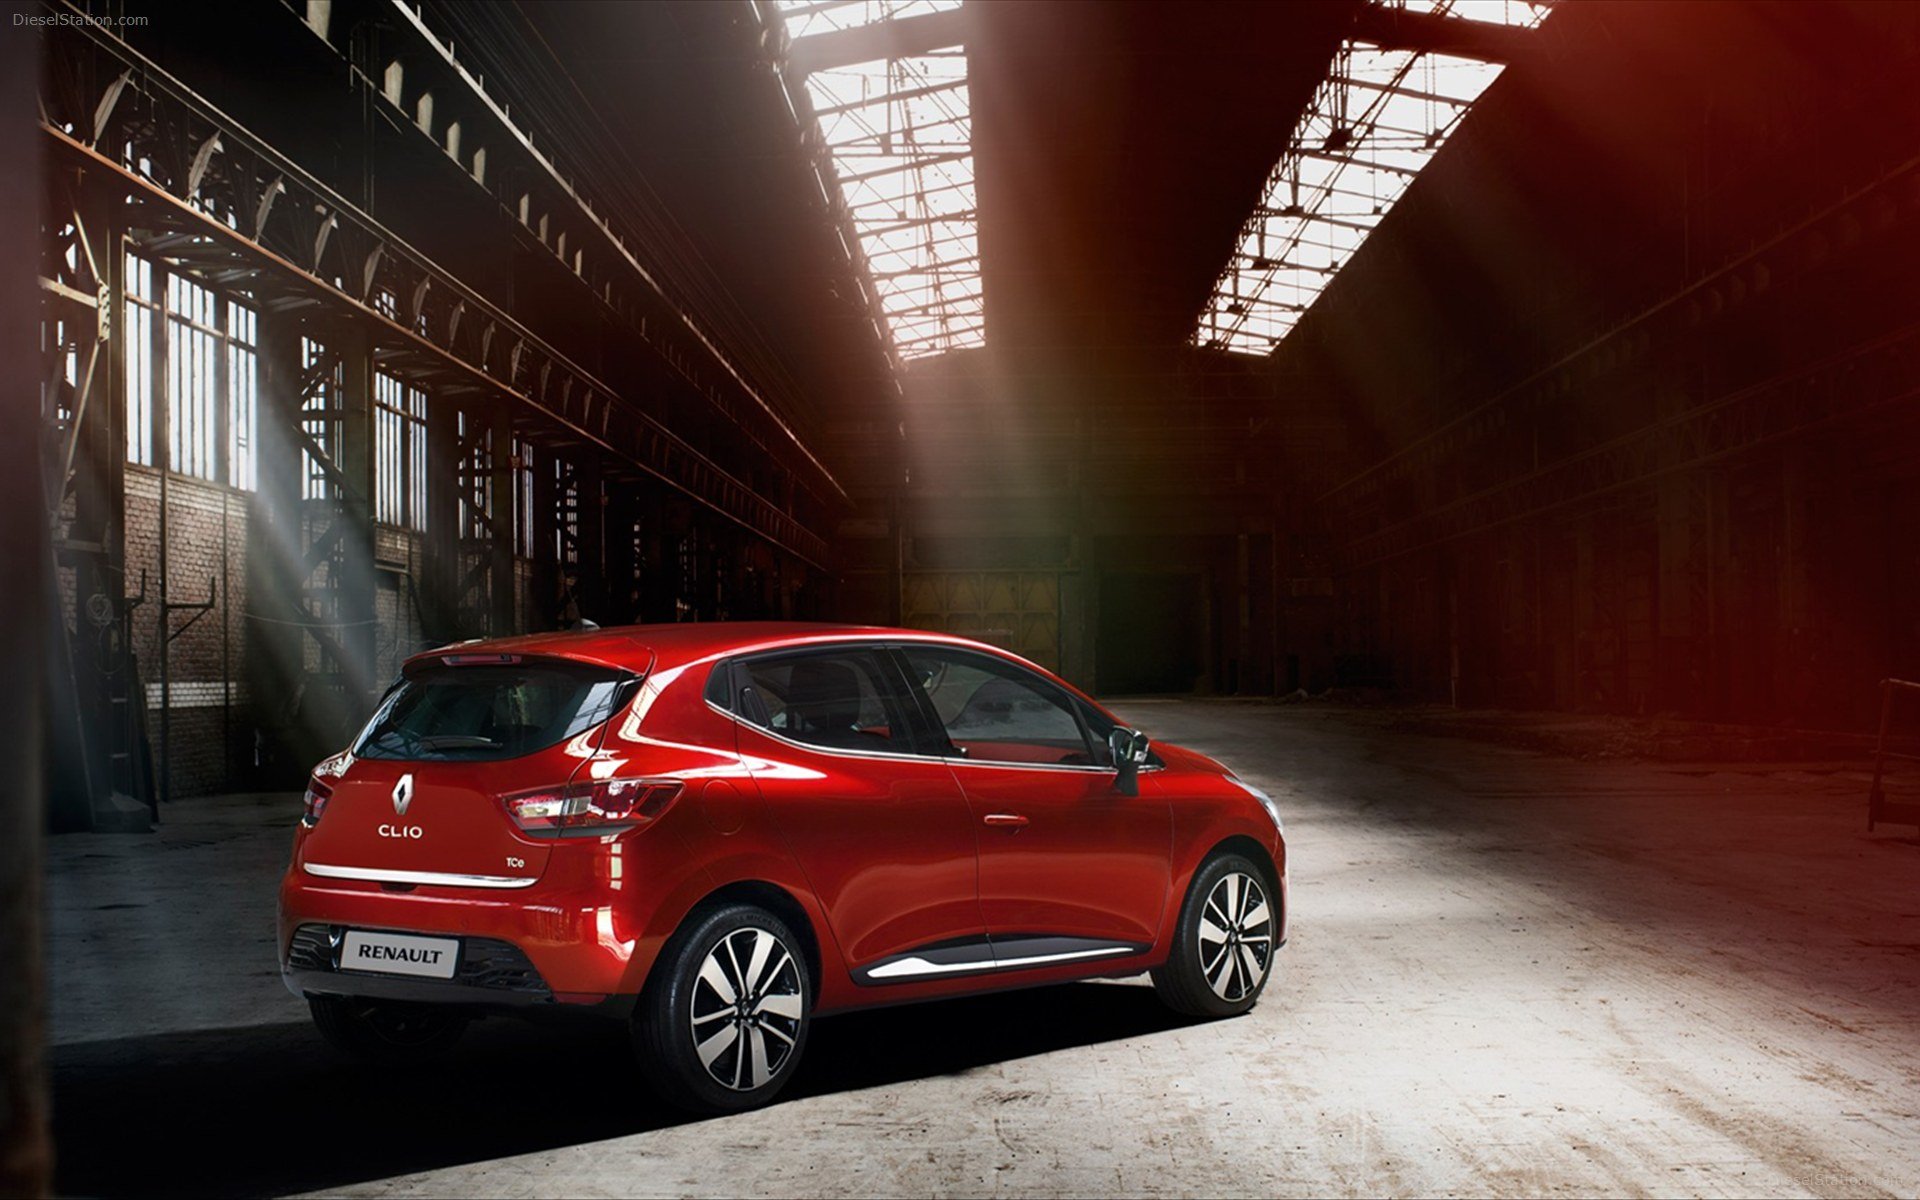 Renault-Clio-2013-images-widescreen-17.jpg